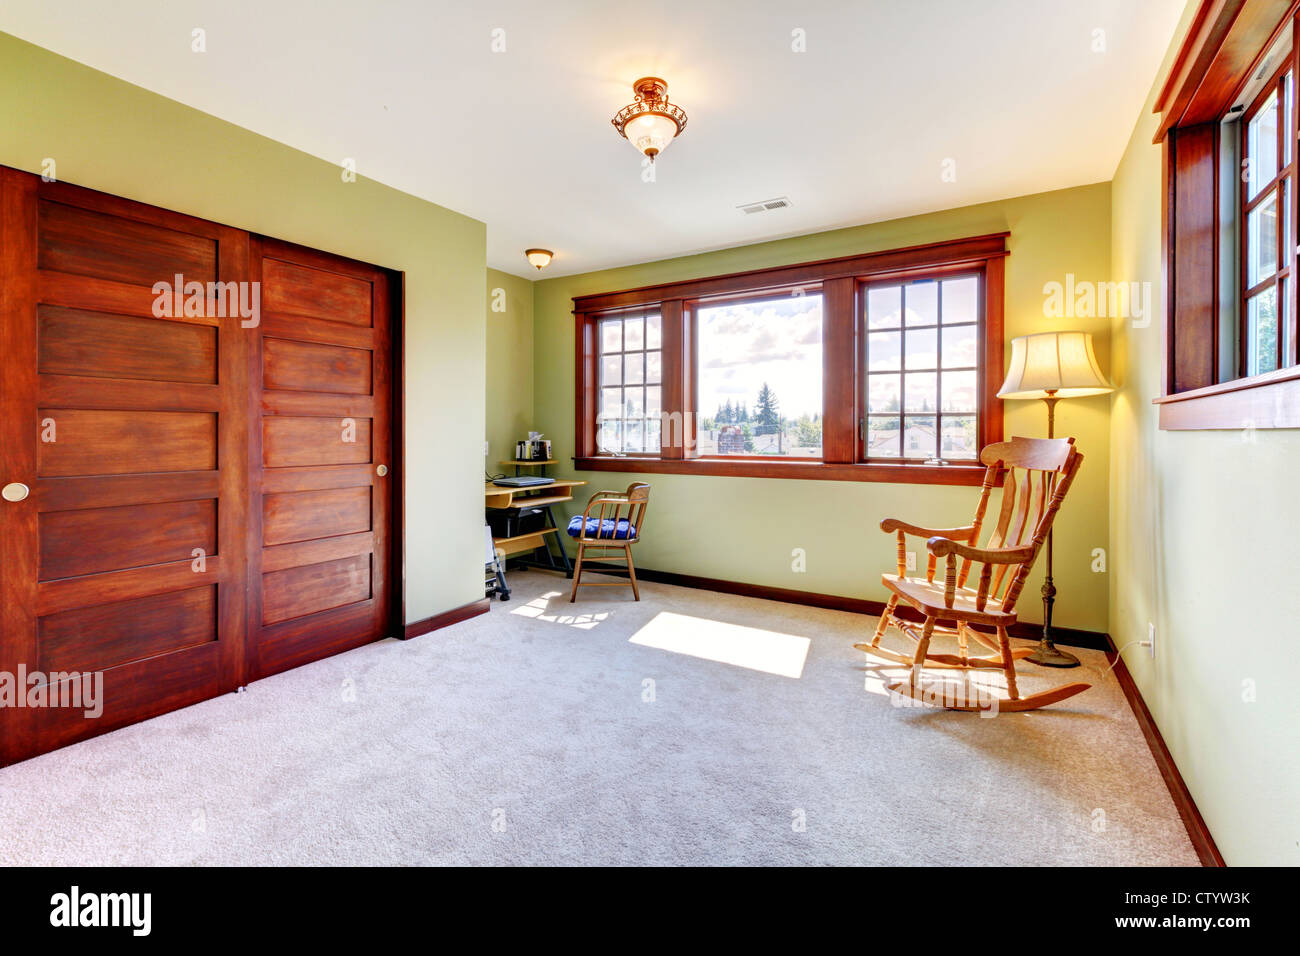 Nice Empty Bedroom With Two Windoows And Wood Closet Doors And Green